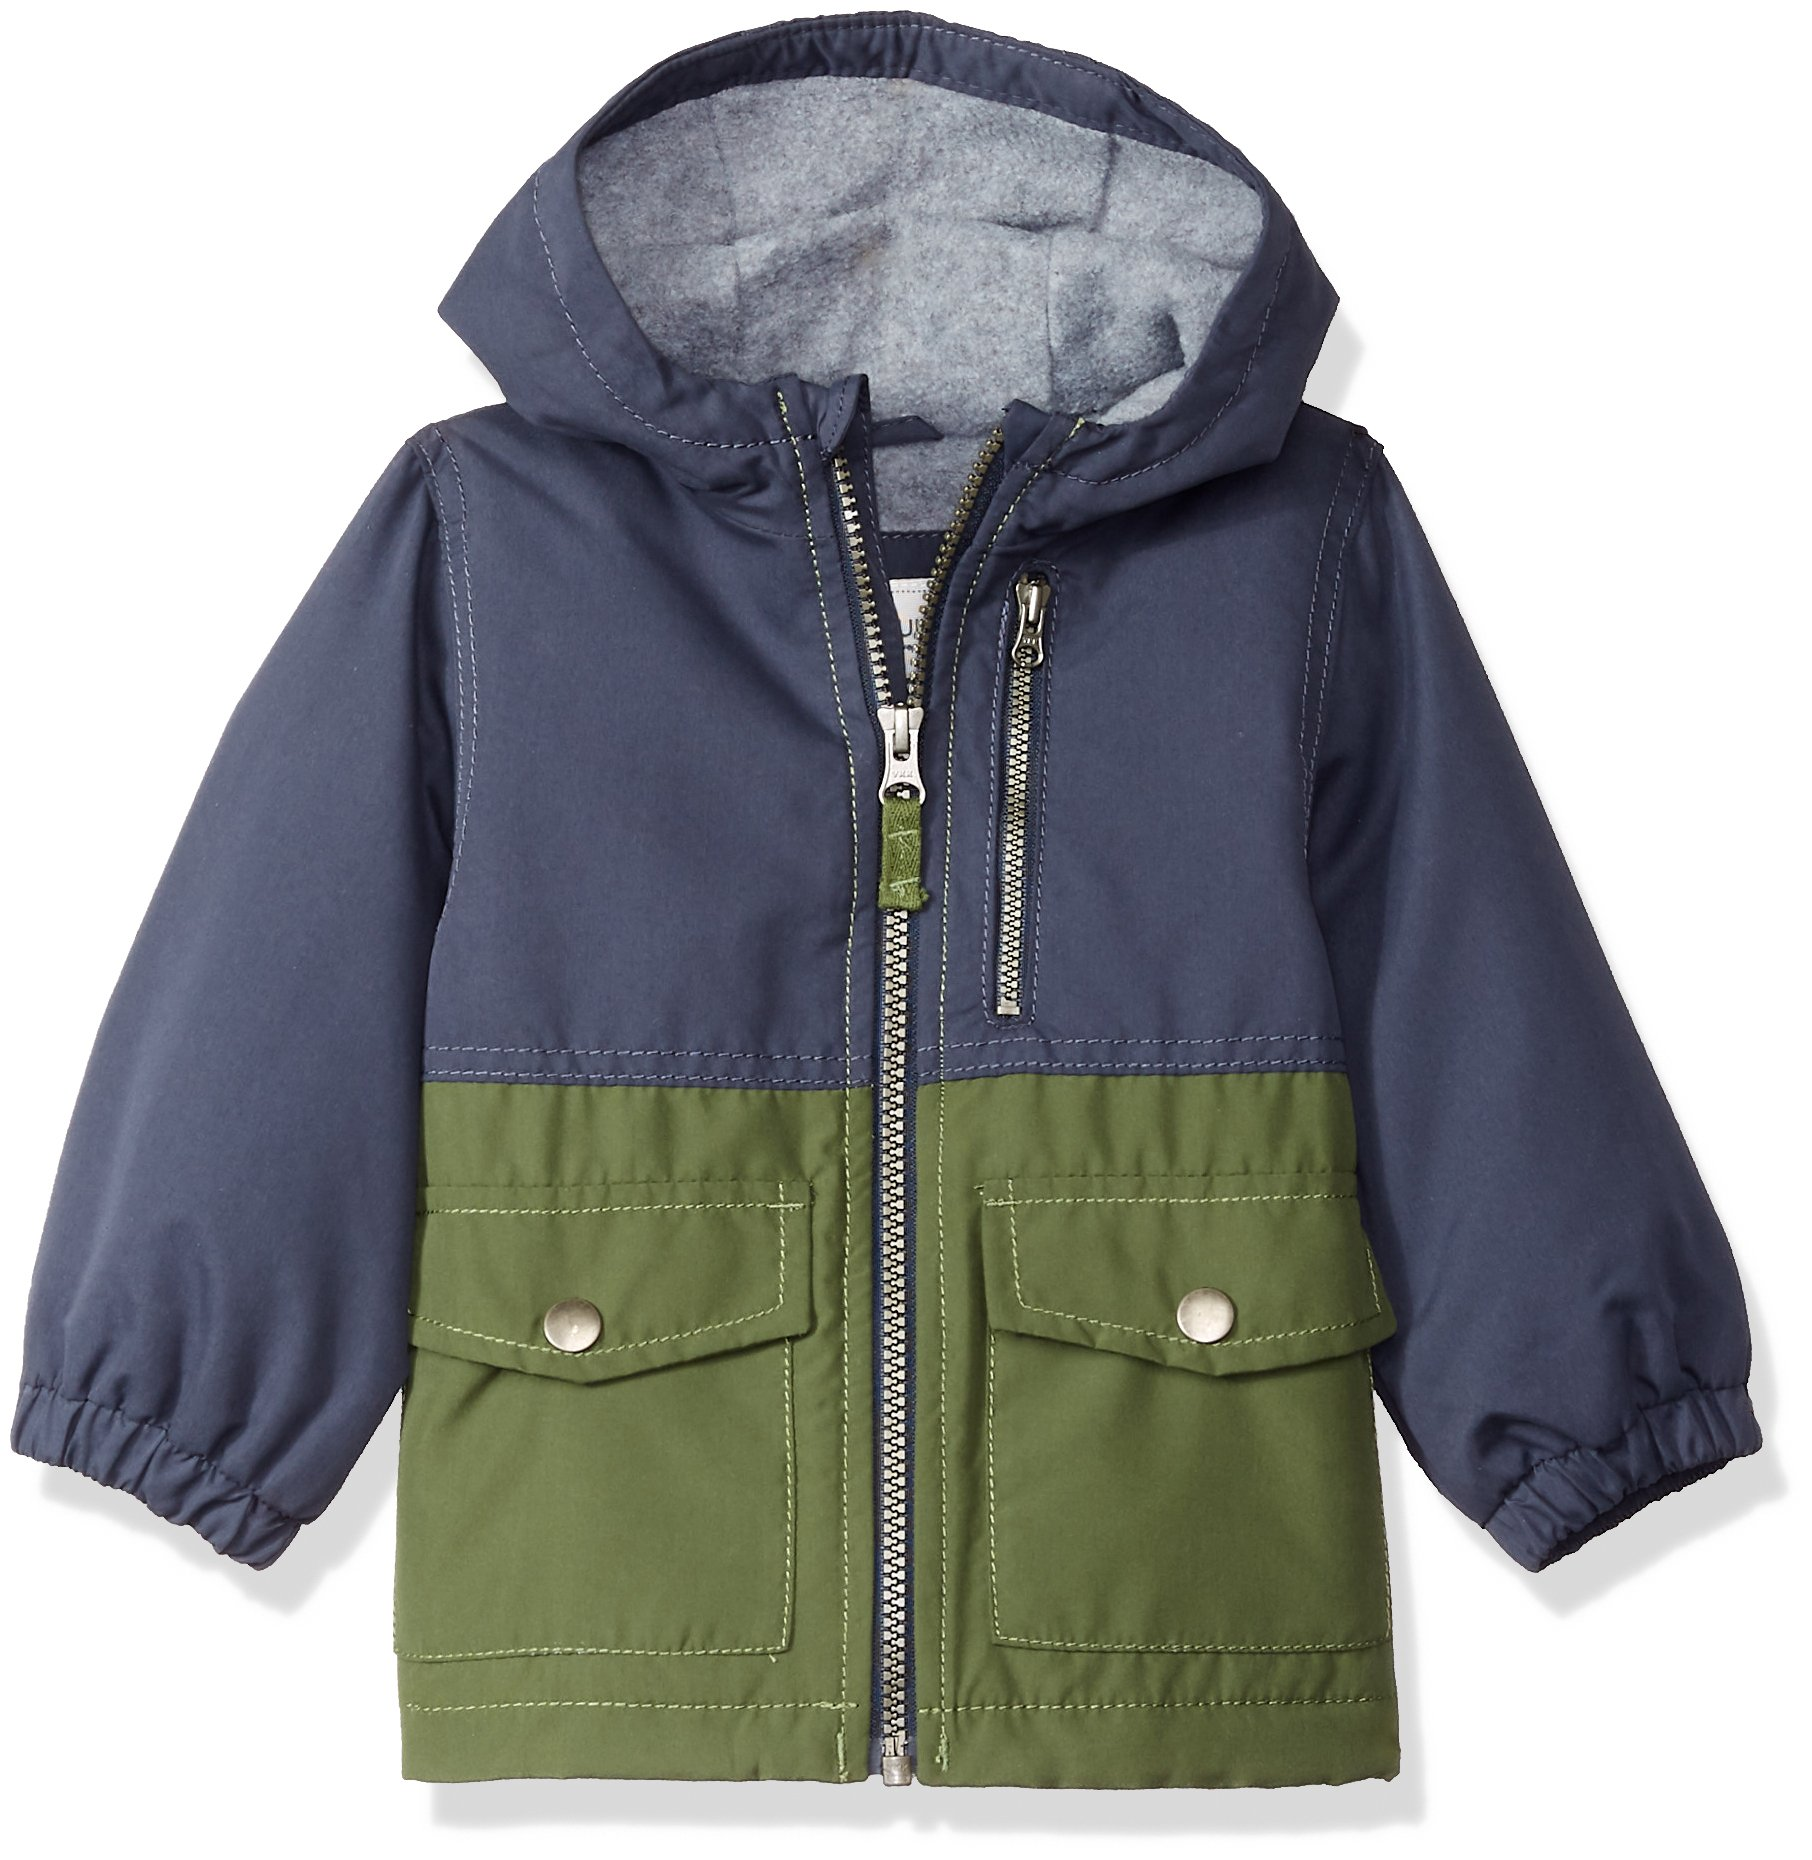 Carter's Baby Boys Perfect Midweight Jacket Coat, Navy/Green, 12M